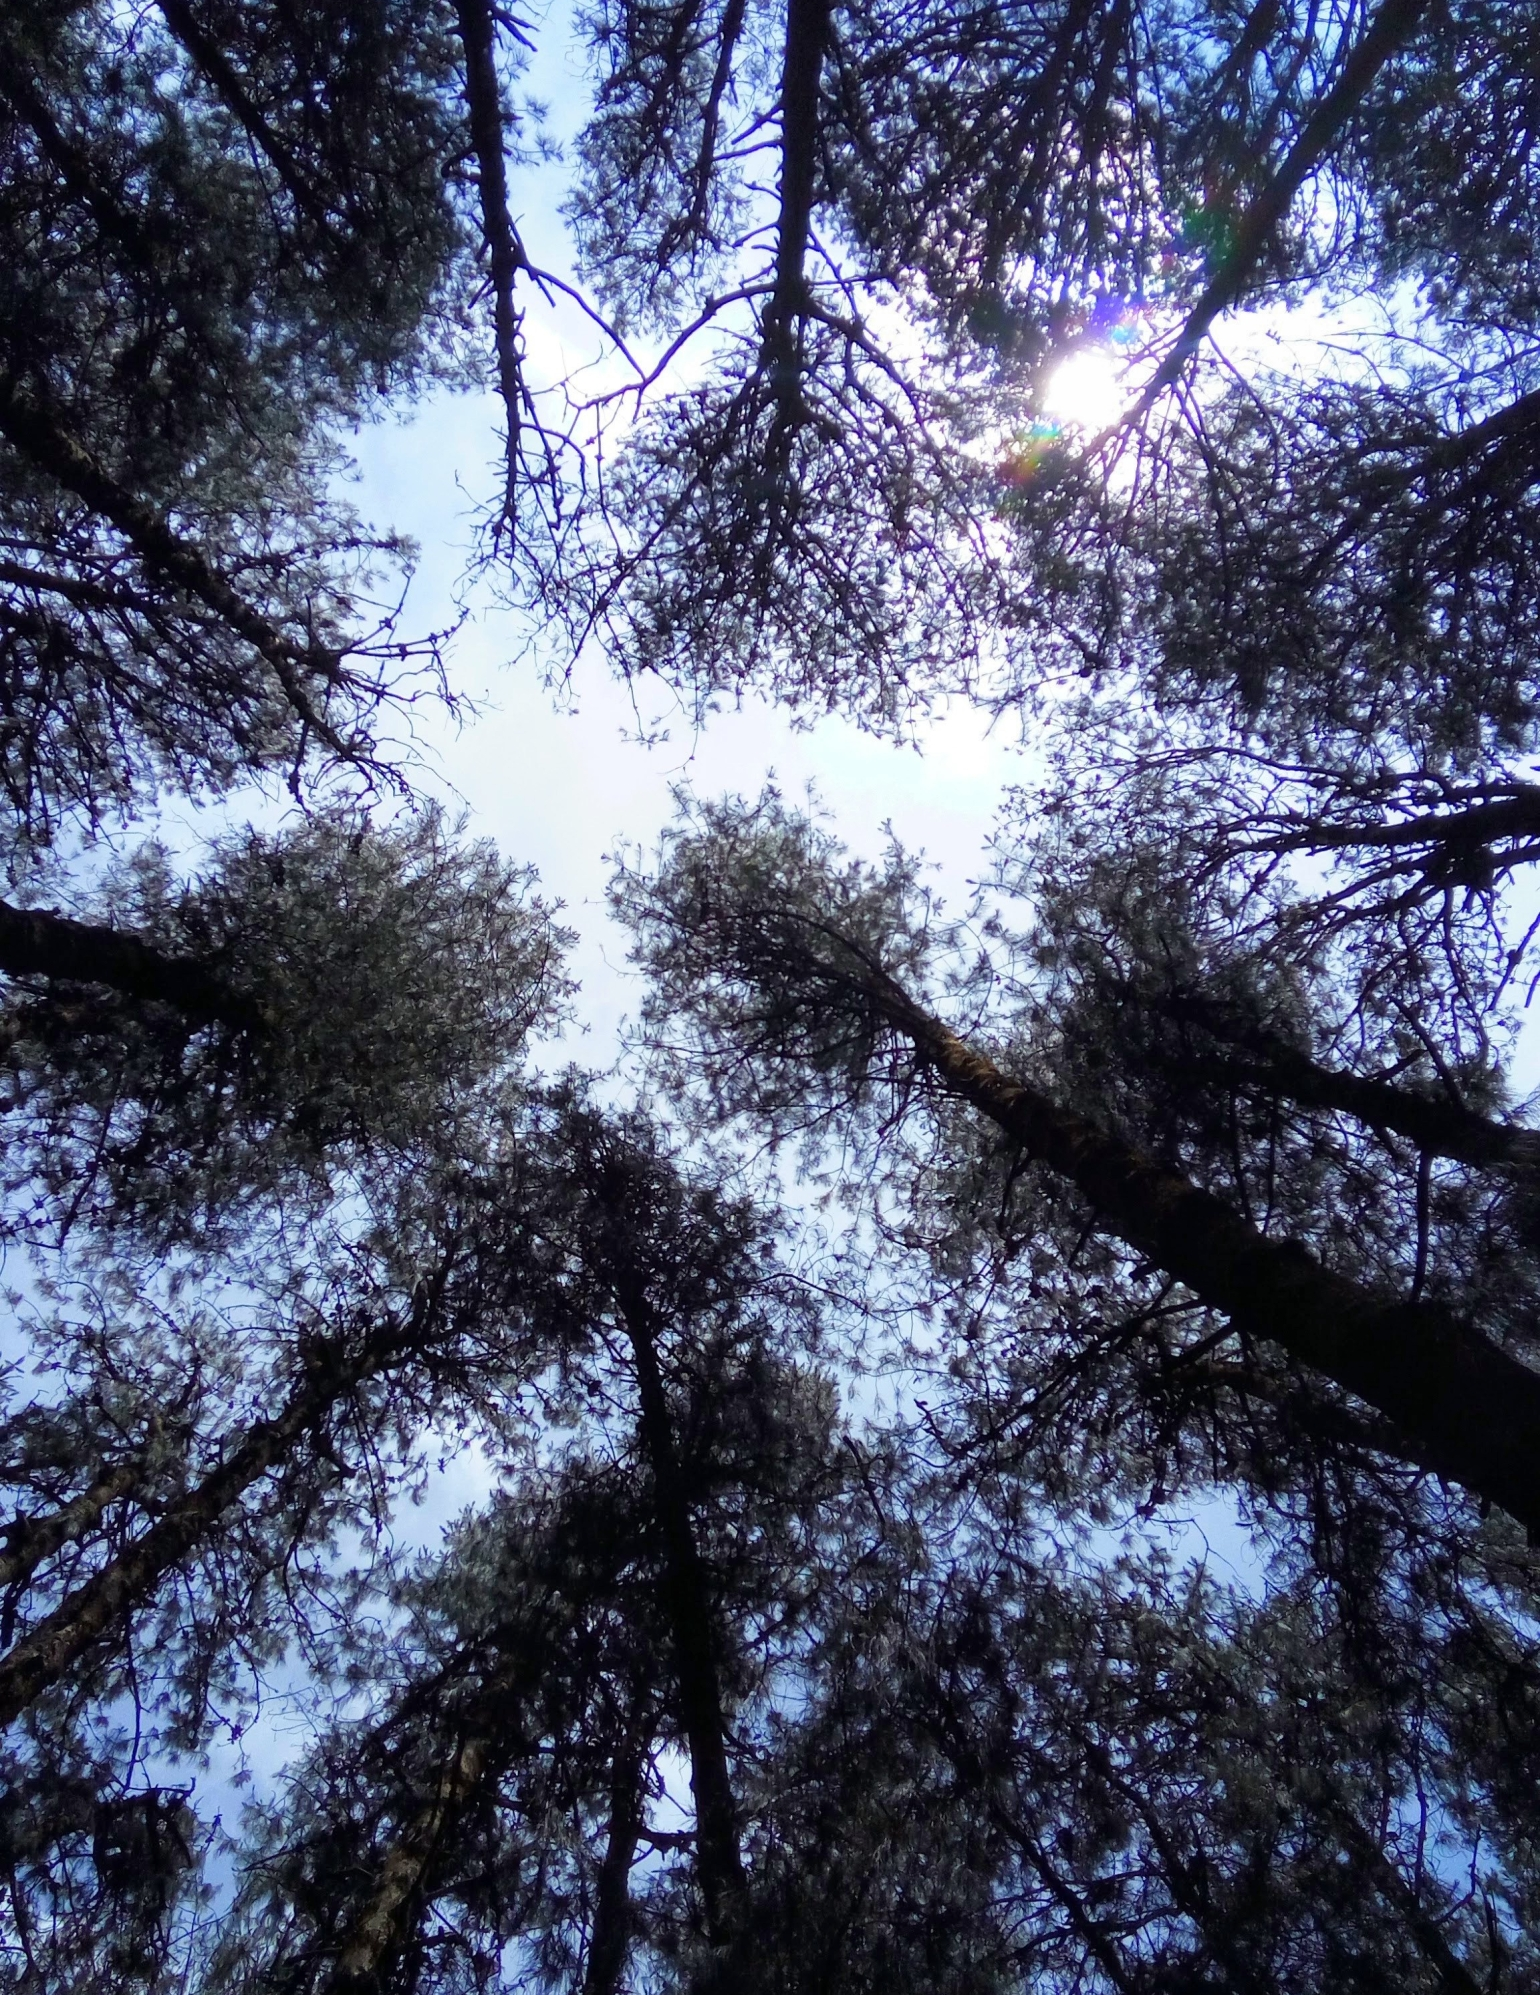 The Dusk of 2017 - Woody Mood - A view of the sky from the middle of a pine forest in Ooty